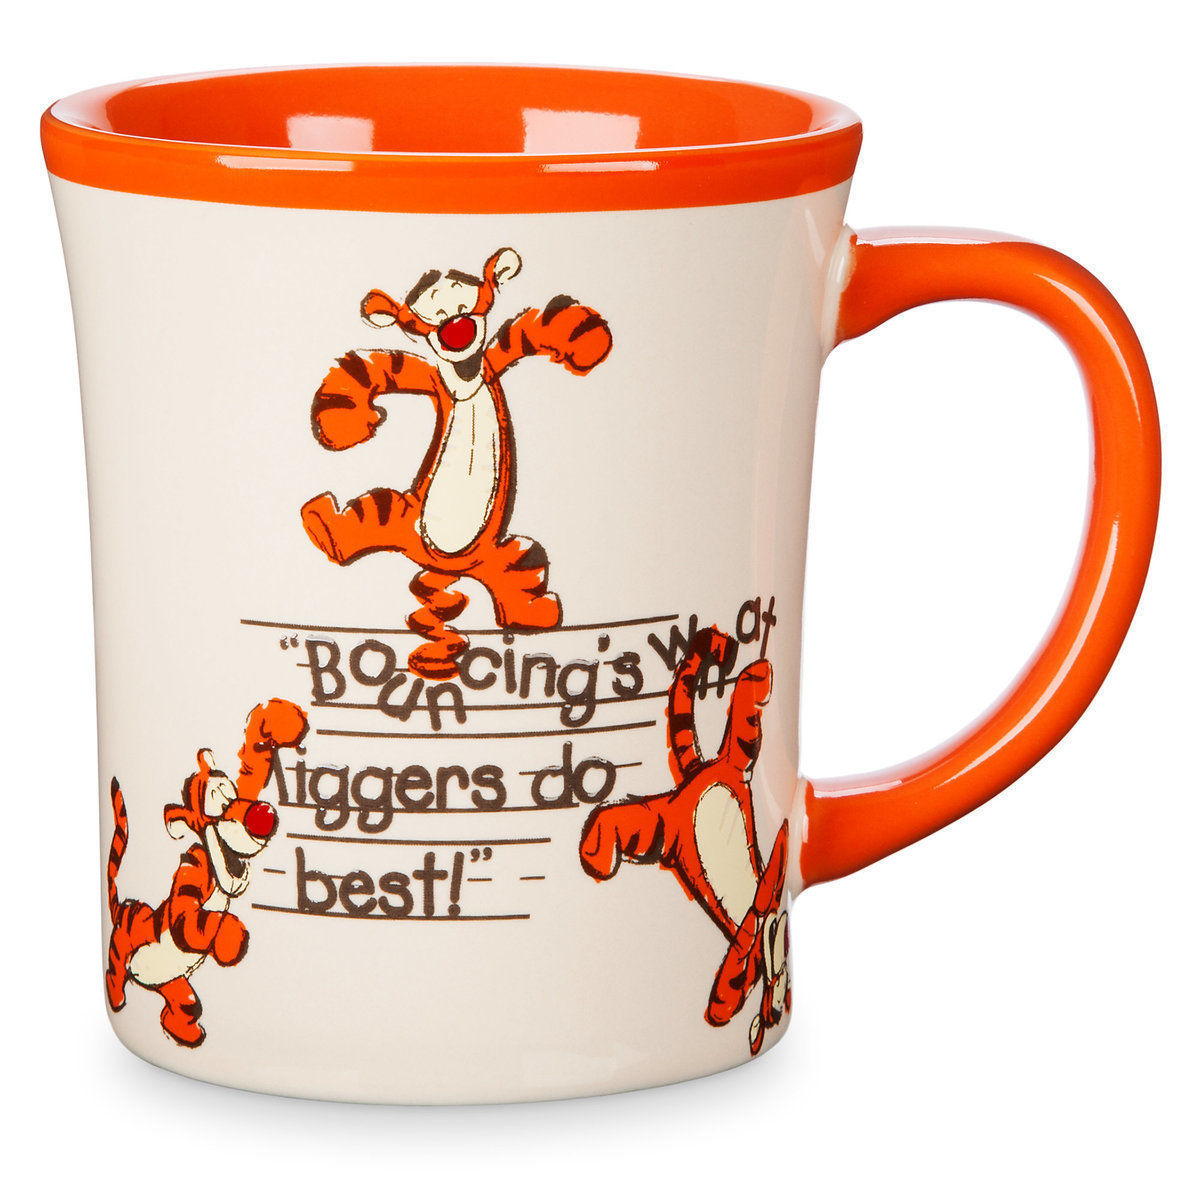 Piget 45 Similar Eeyore Store Pooh And Items Tigger Disney f7yvgYb6